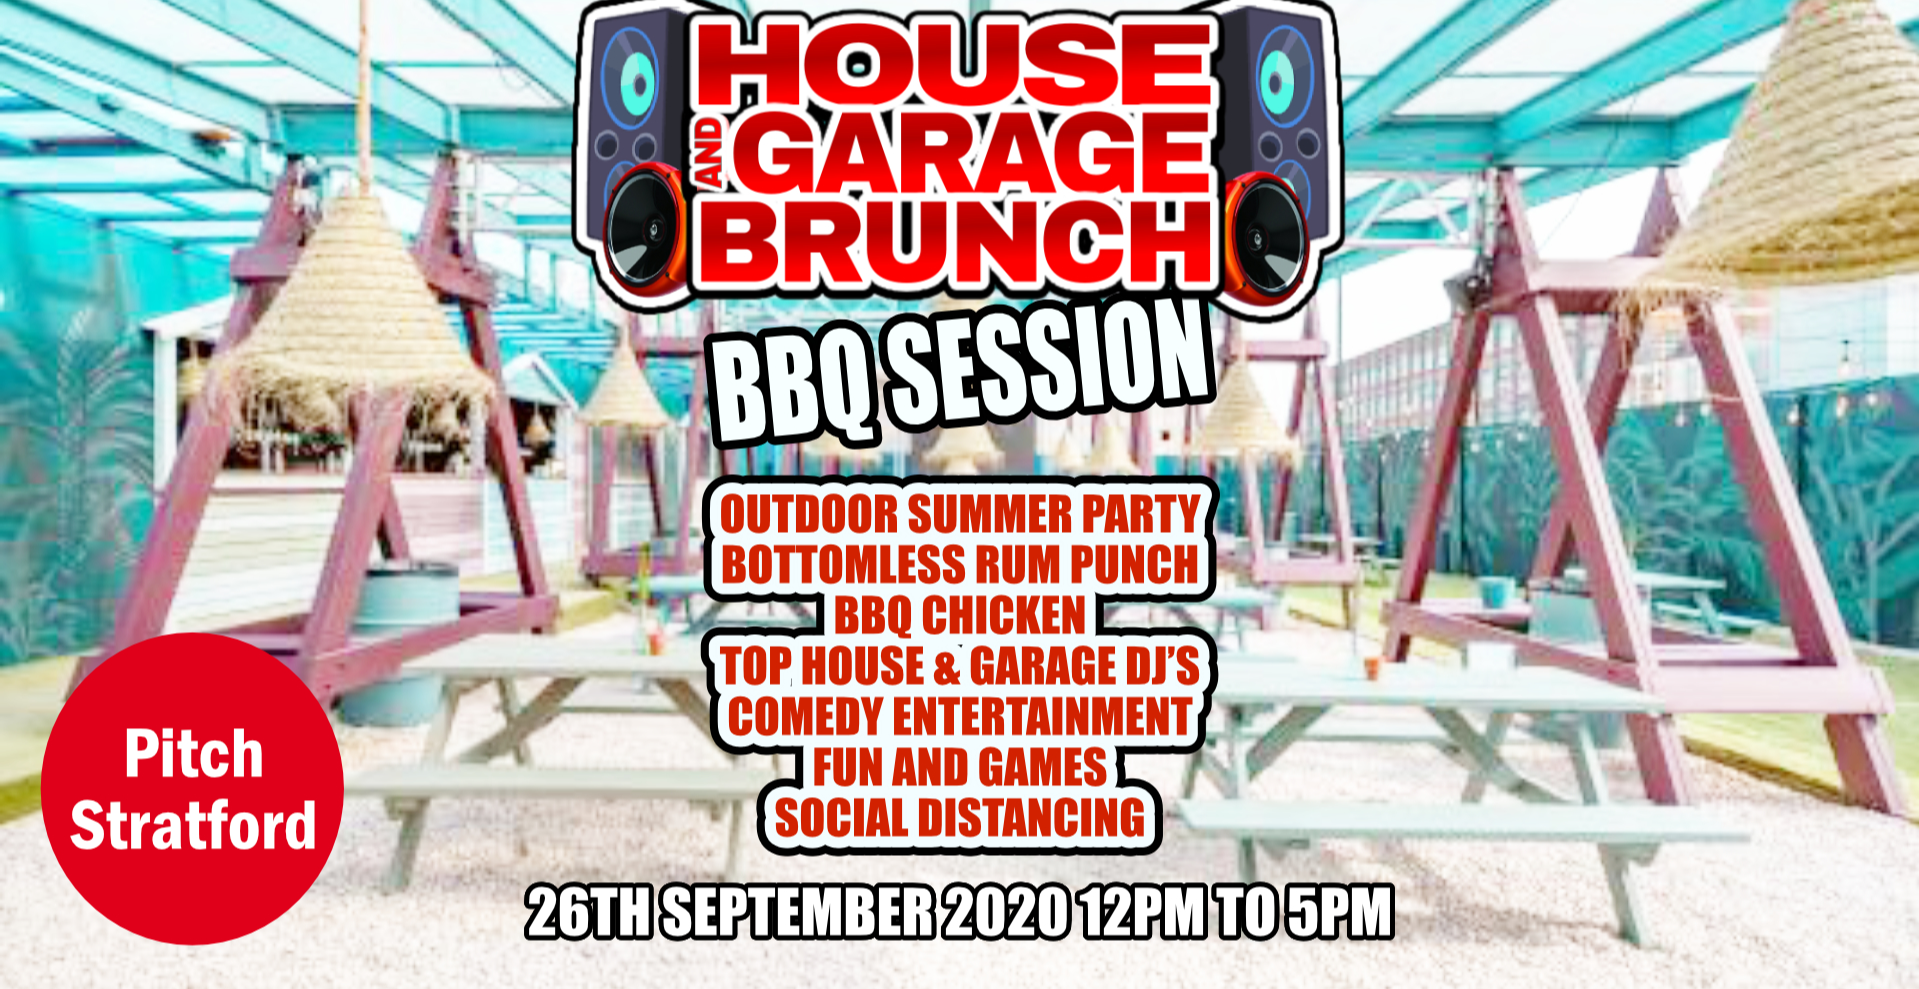 HOUSE AND GARAGE BRUNCH BBQ SESSION